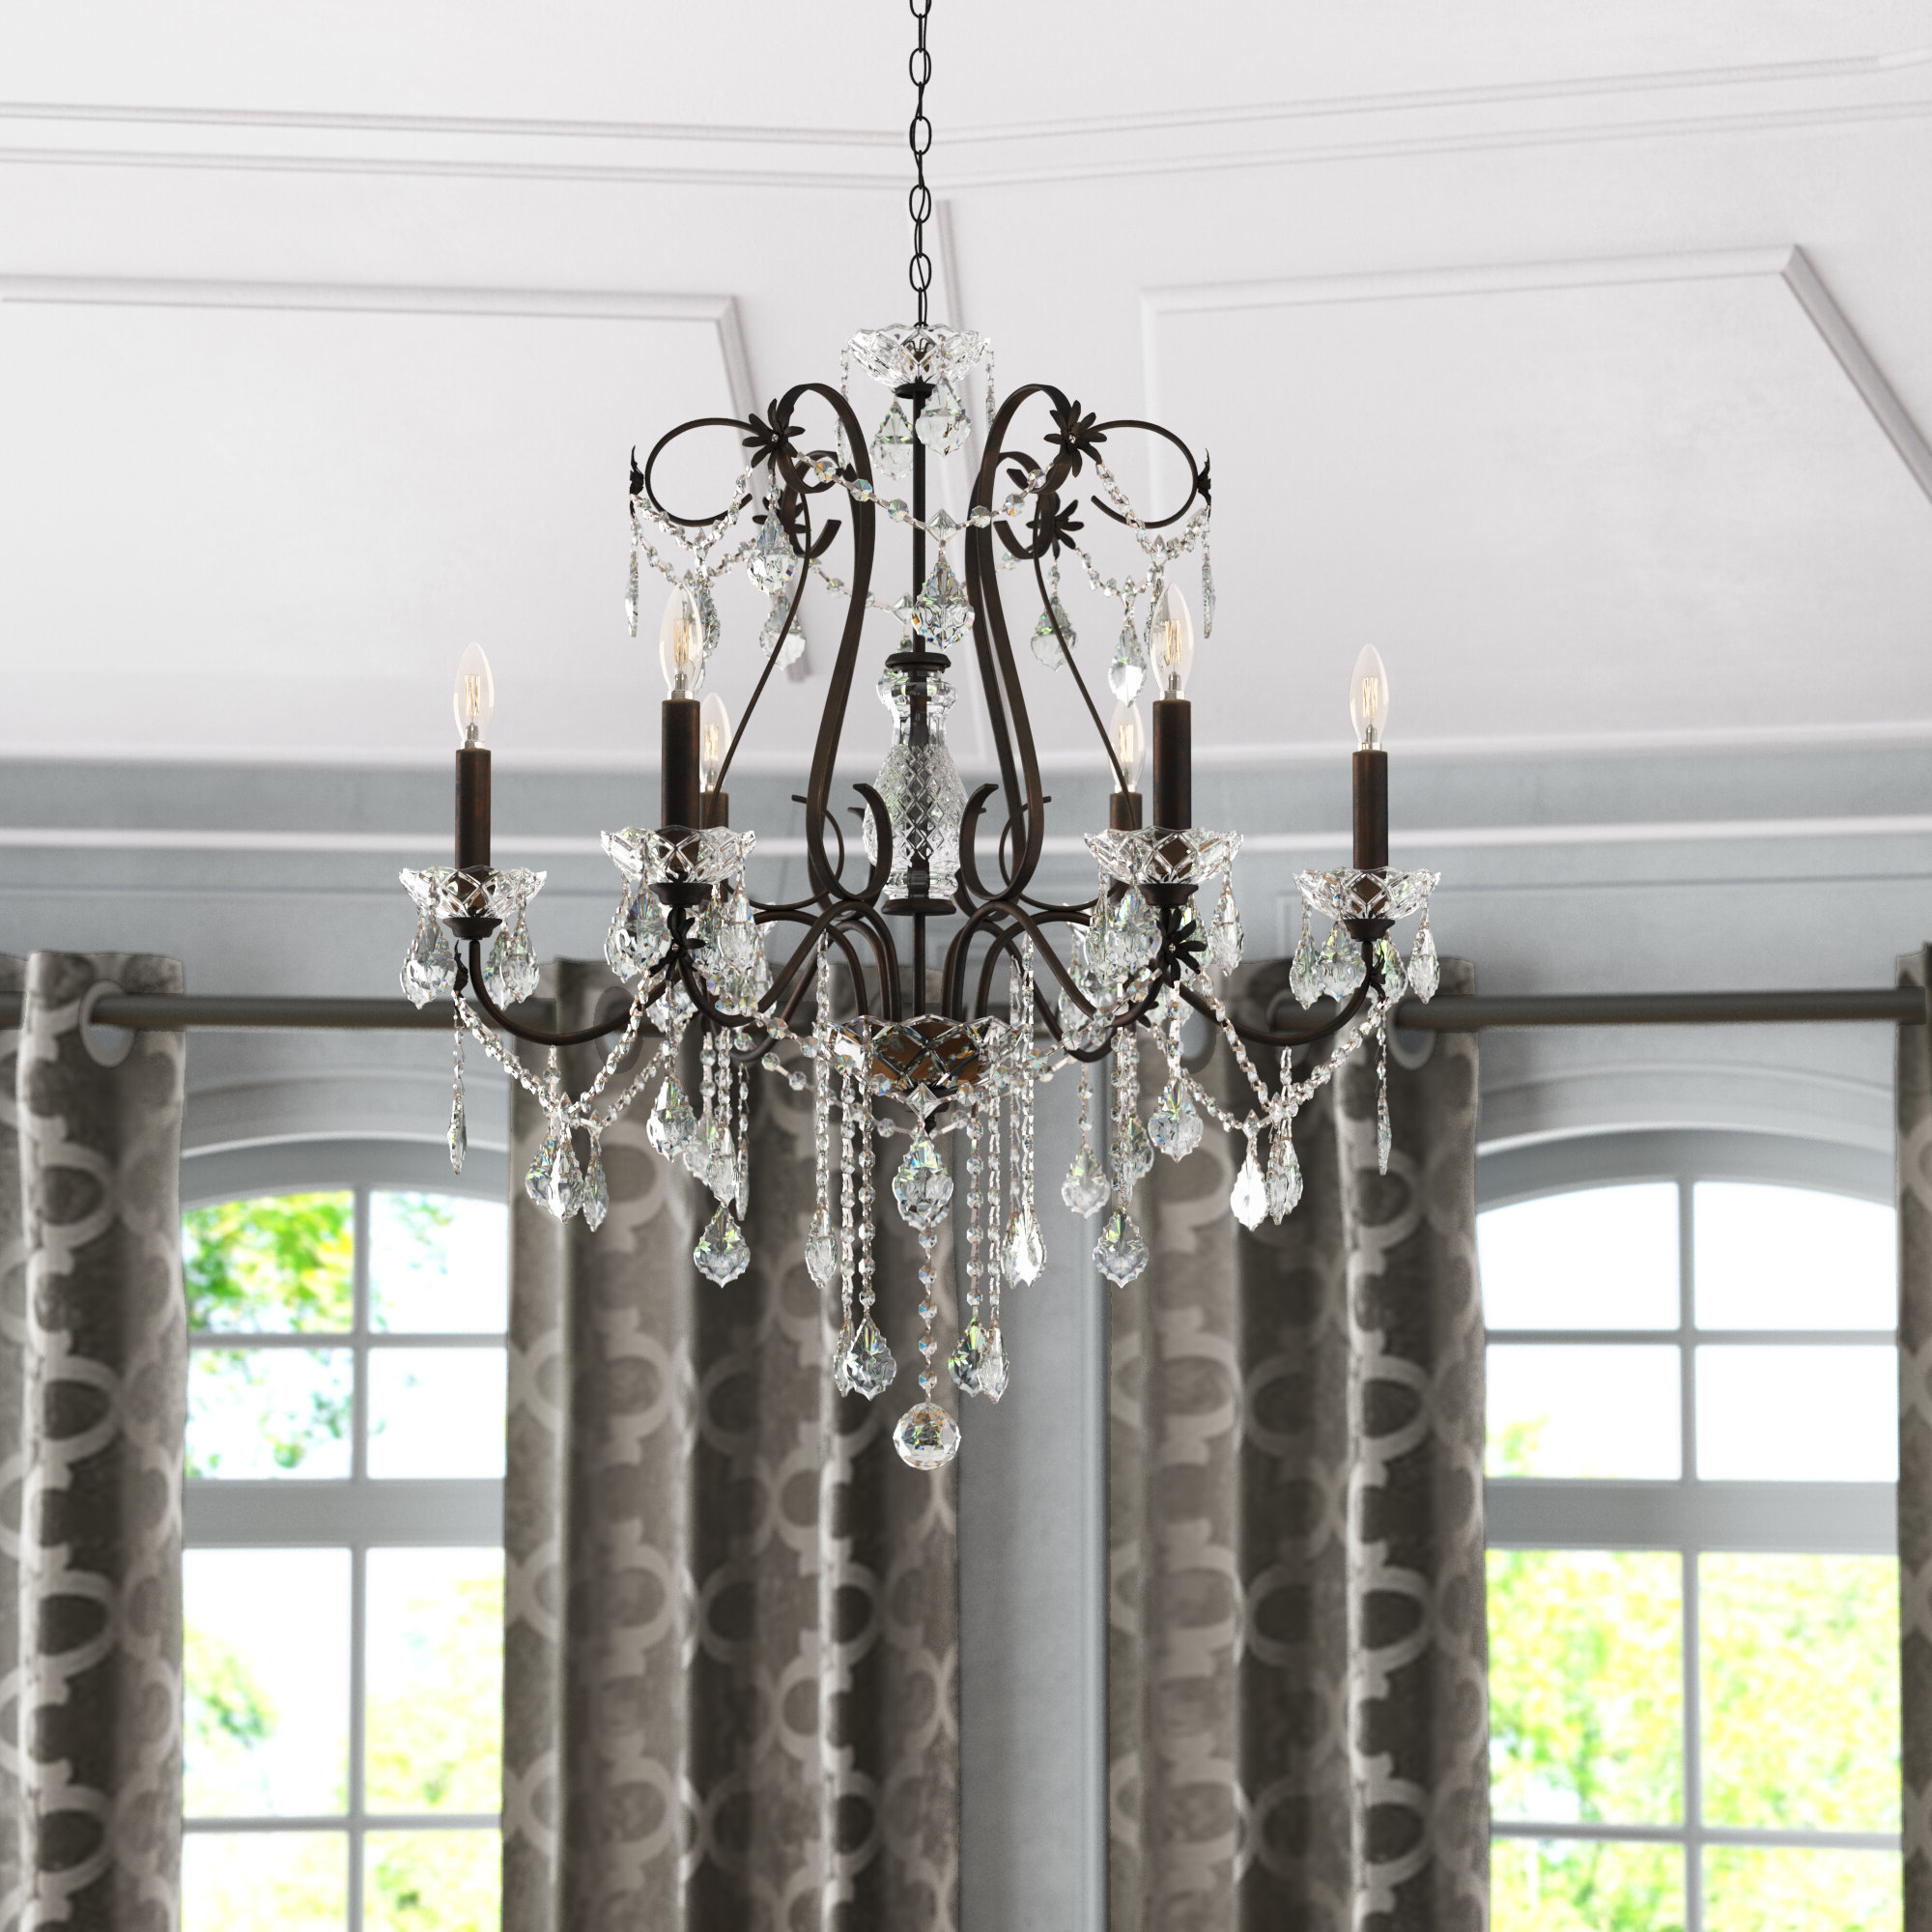 Hesse 5 Light Candle Style Chandeliers Regarding Well Known Thao 6 Light Candle Style Chandelier (View 19 of 25)